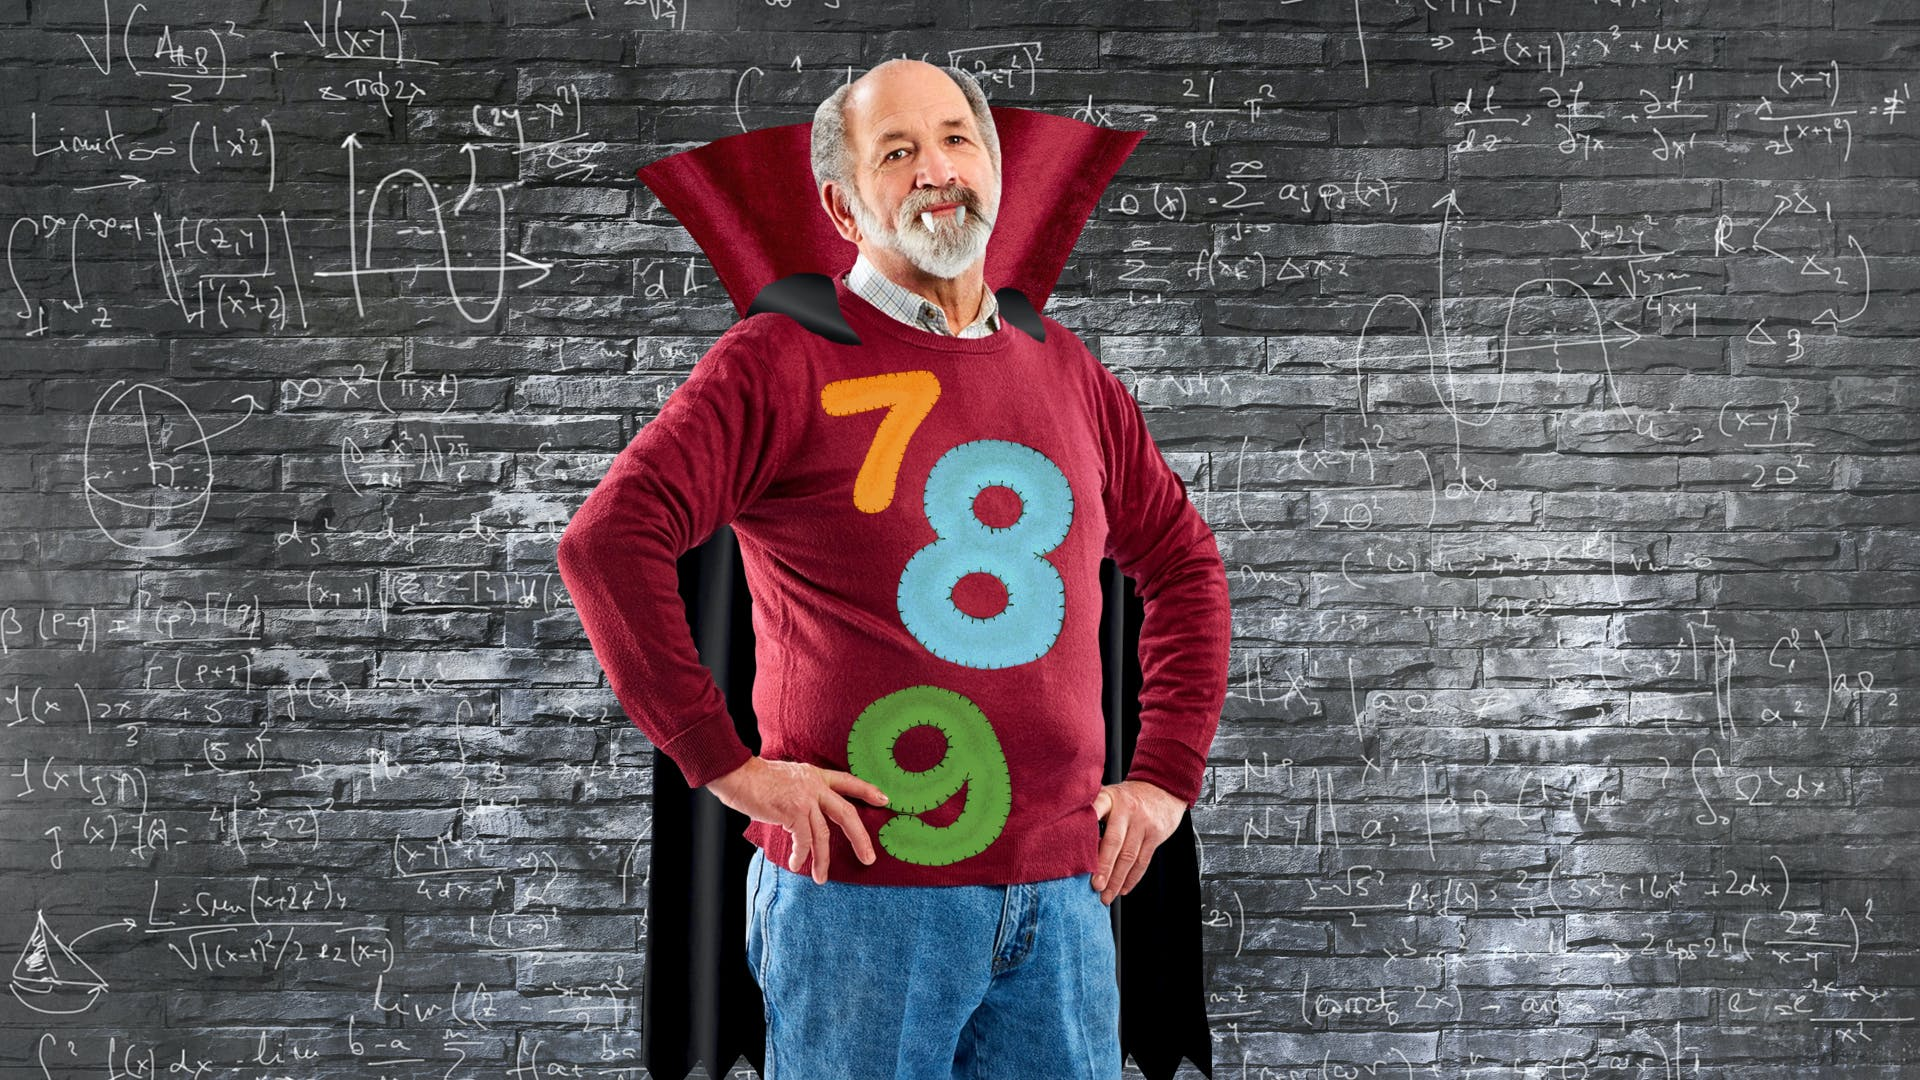 Maths teacher dressed as Dracula with numbers on his jumper